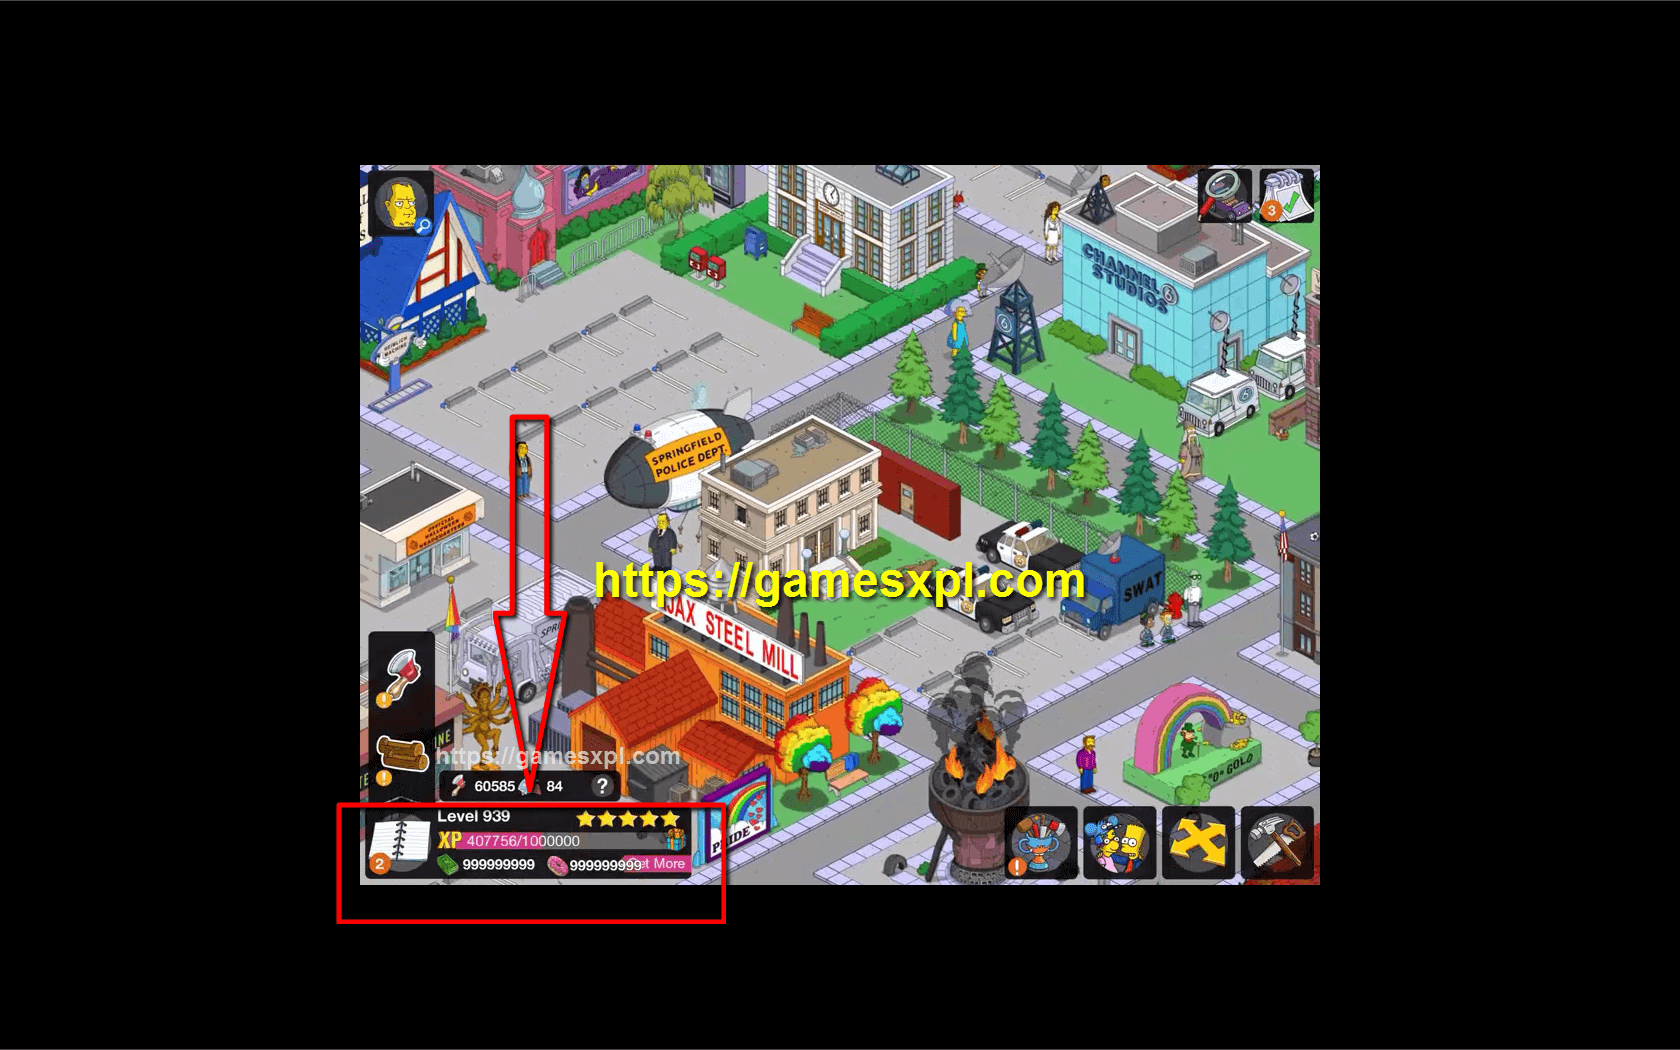 The Simpsons Tapped Out Hack Mod Apk – How to Have Unlimited